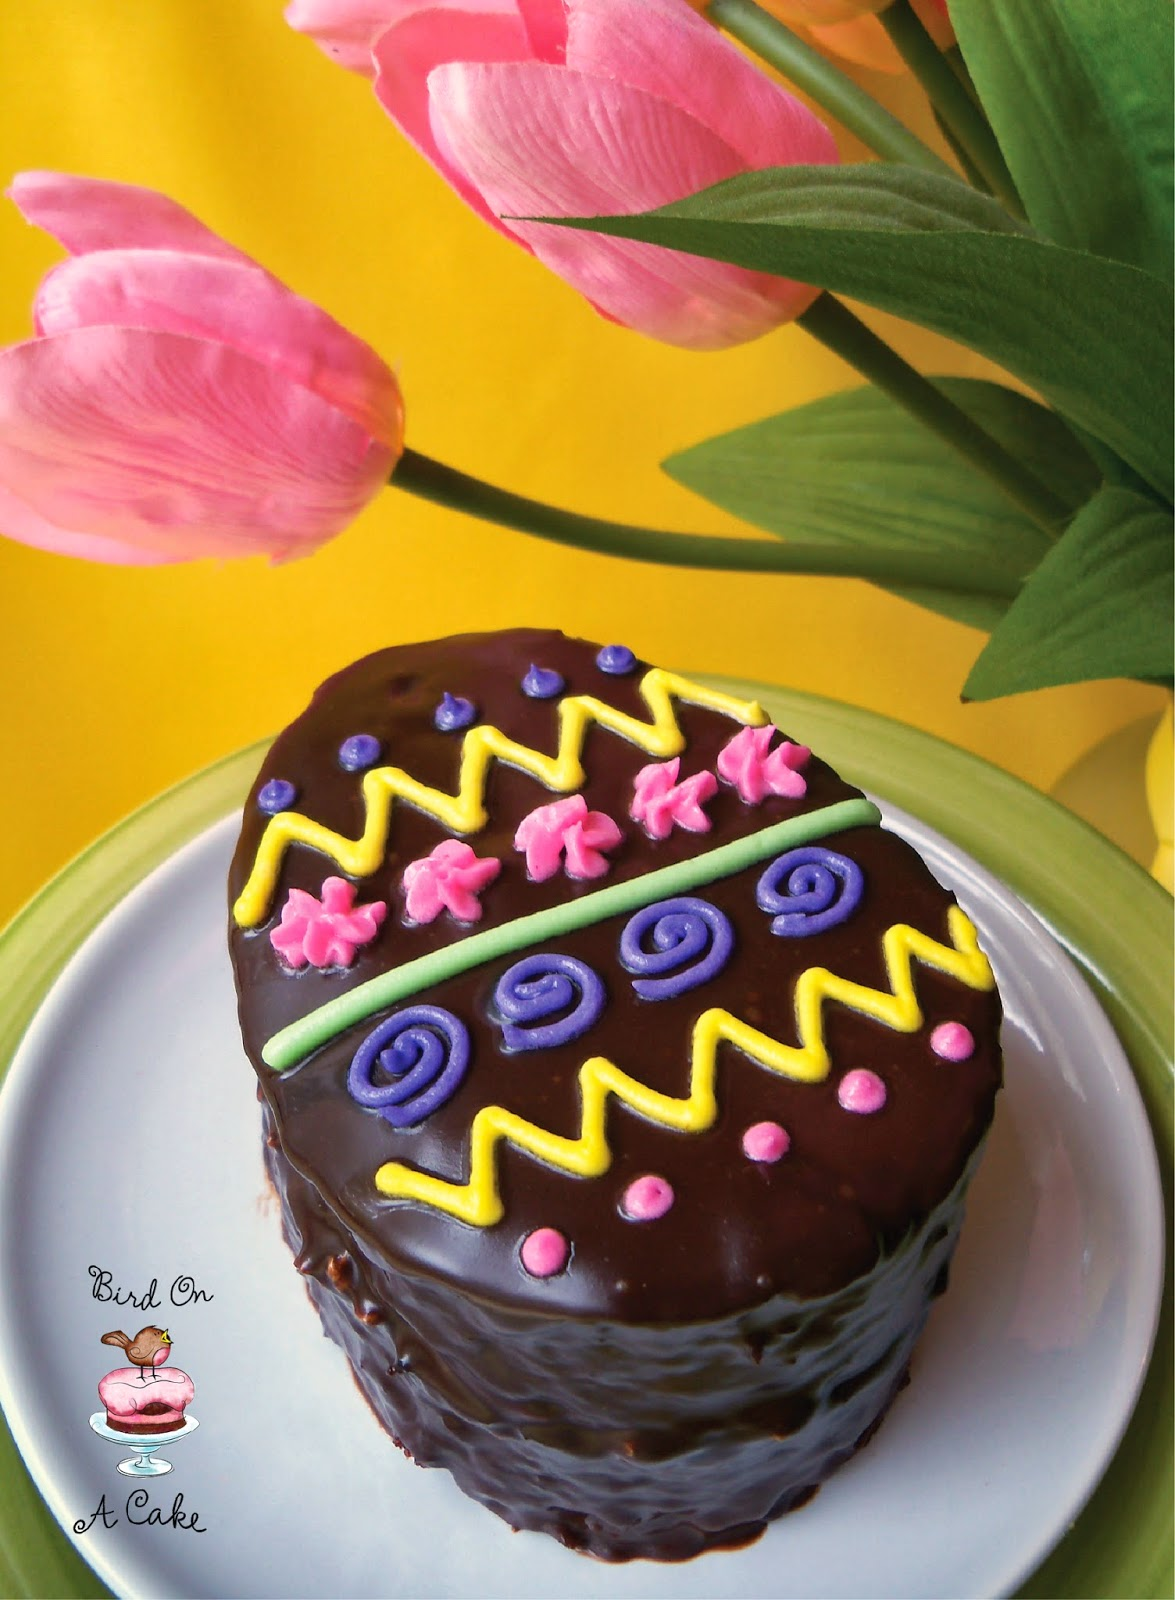 http://birdonacake.blogspot.com/2013/03/chocolate-easter-egg-mini-cakes.html